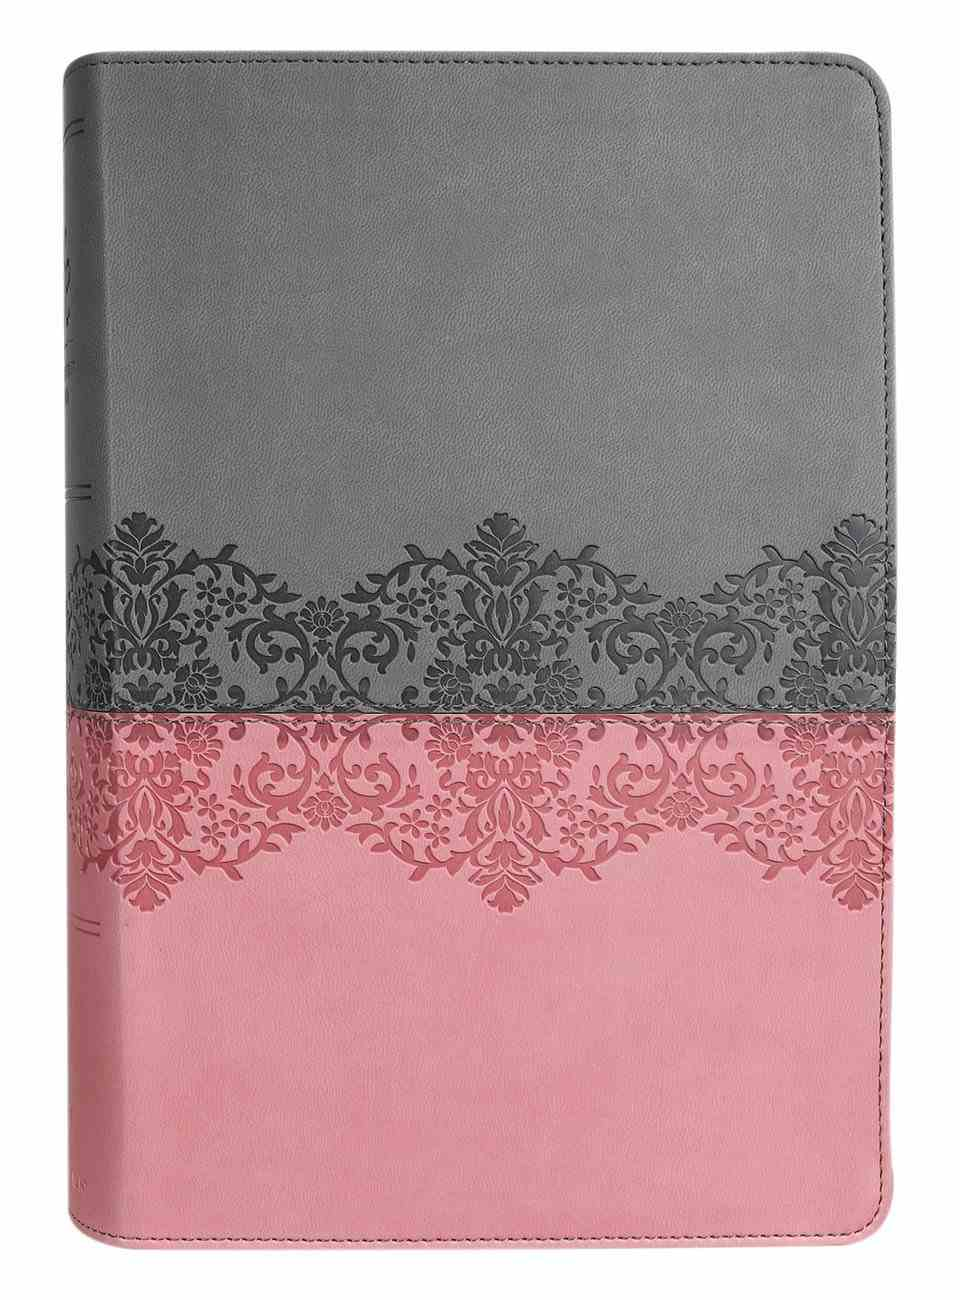 NIV Life Application Study Bible Third Edition Large Print Gray/Pink Indexed (Red Letter Edition) Premium Imitation Leather